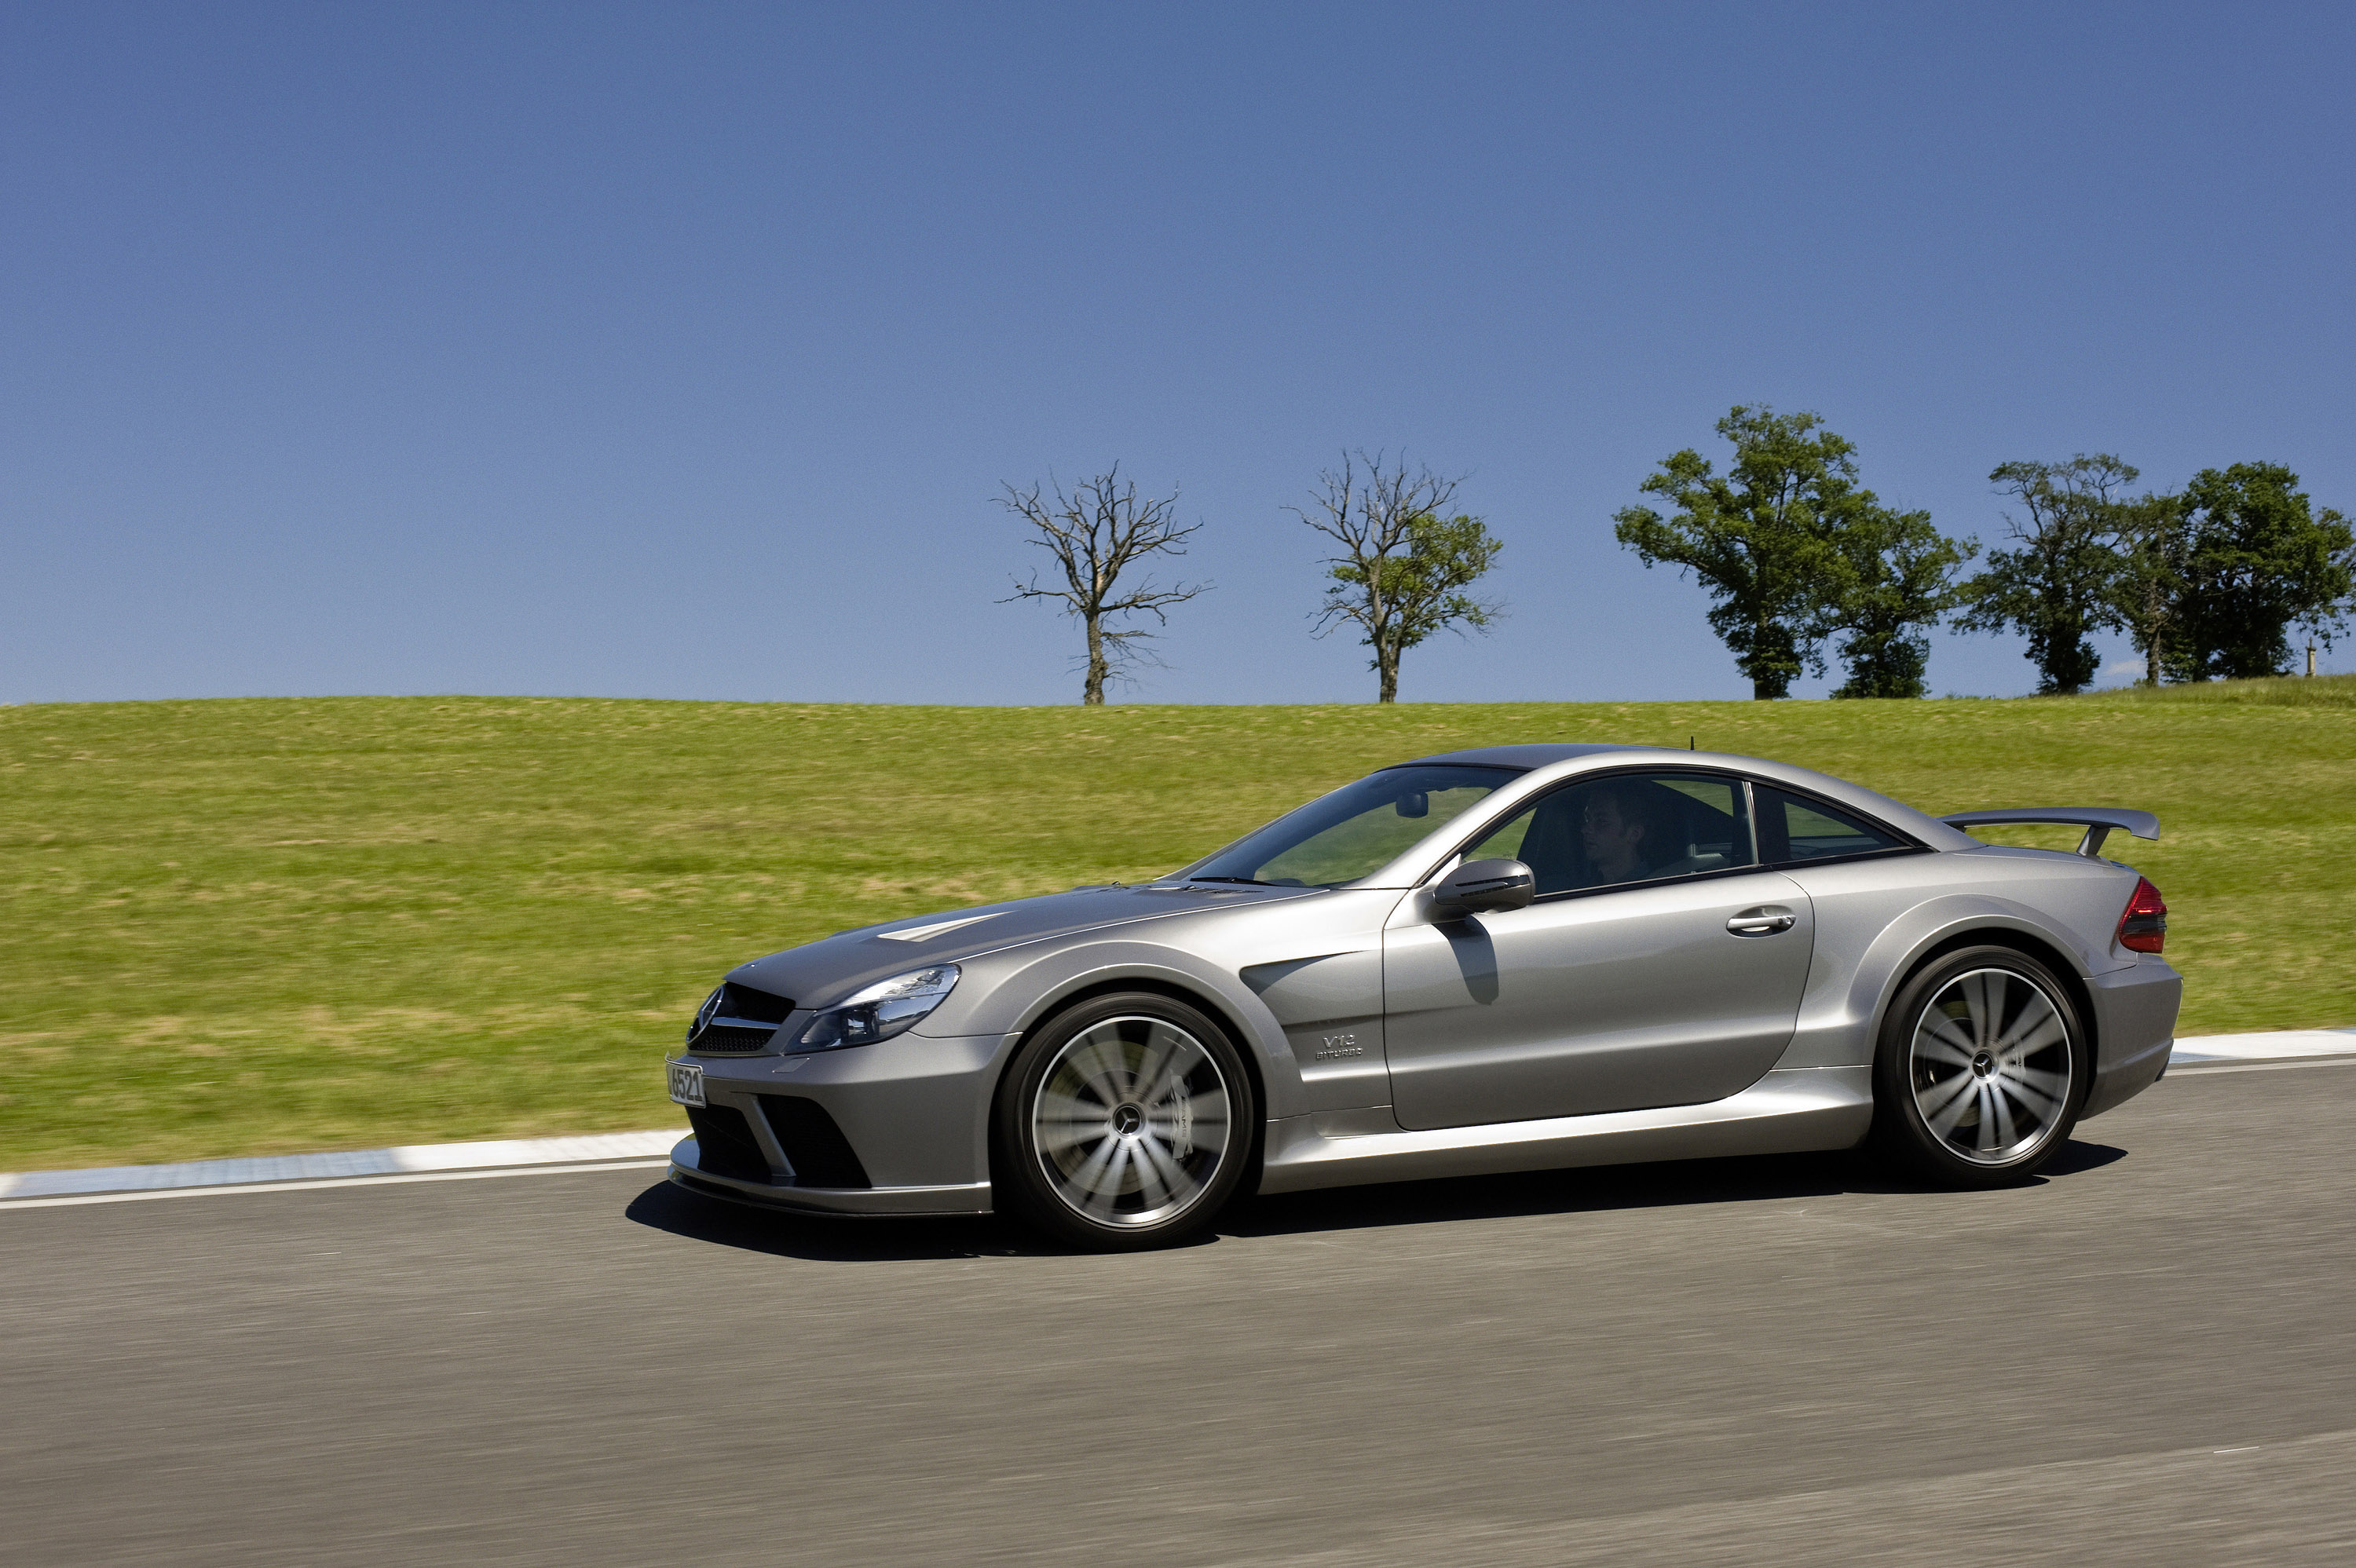 Mercedes benz sl 65 amg black series picture 7303 for Mercedes benz sl series